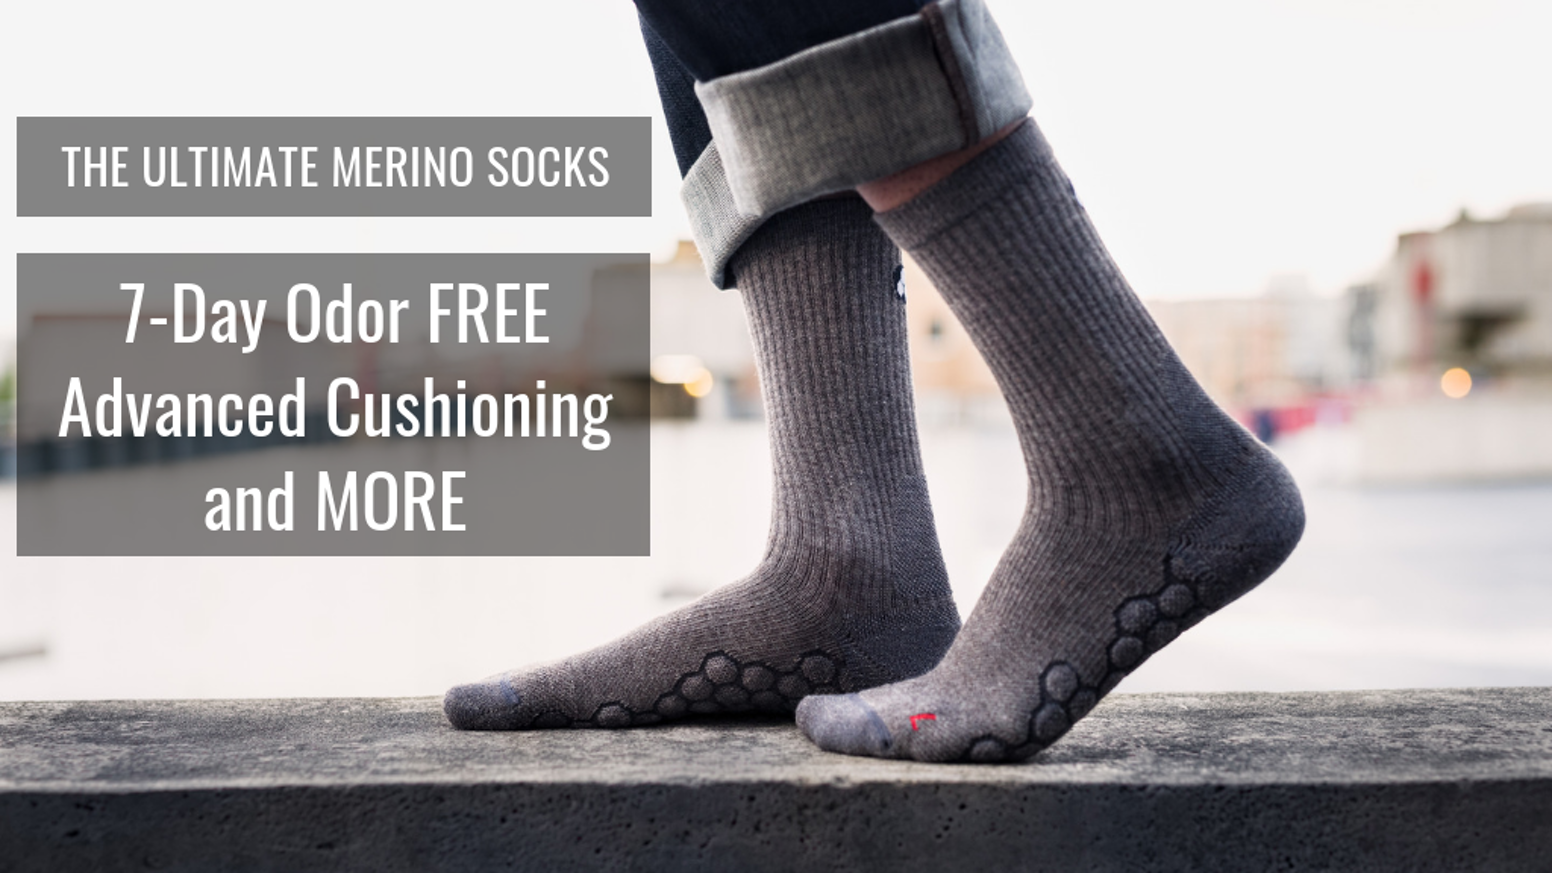 Our Elevated Merino Socks combine technical materials that combat harsh outdoor conditions of rustic environments and urban cityscapes.